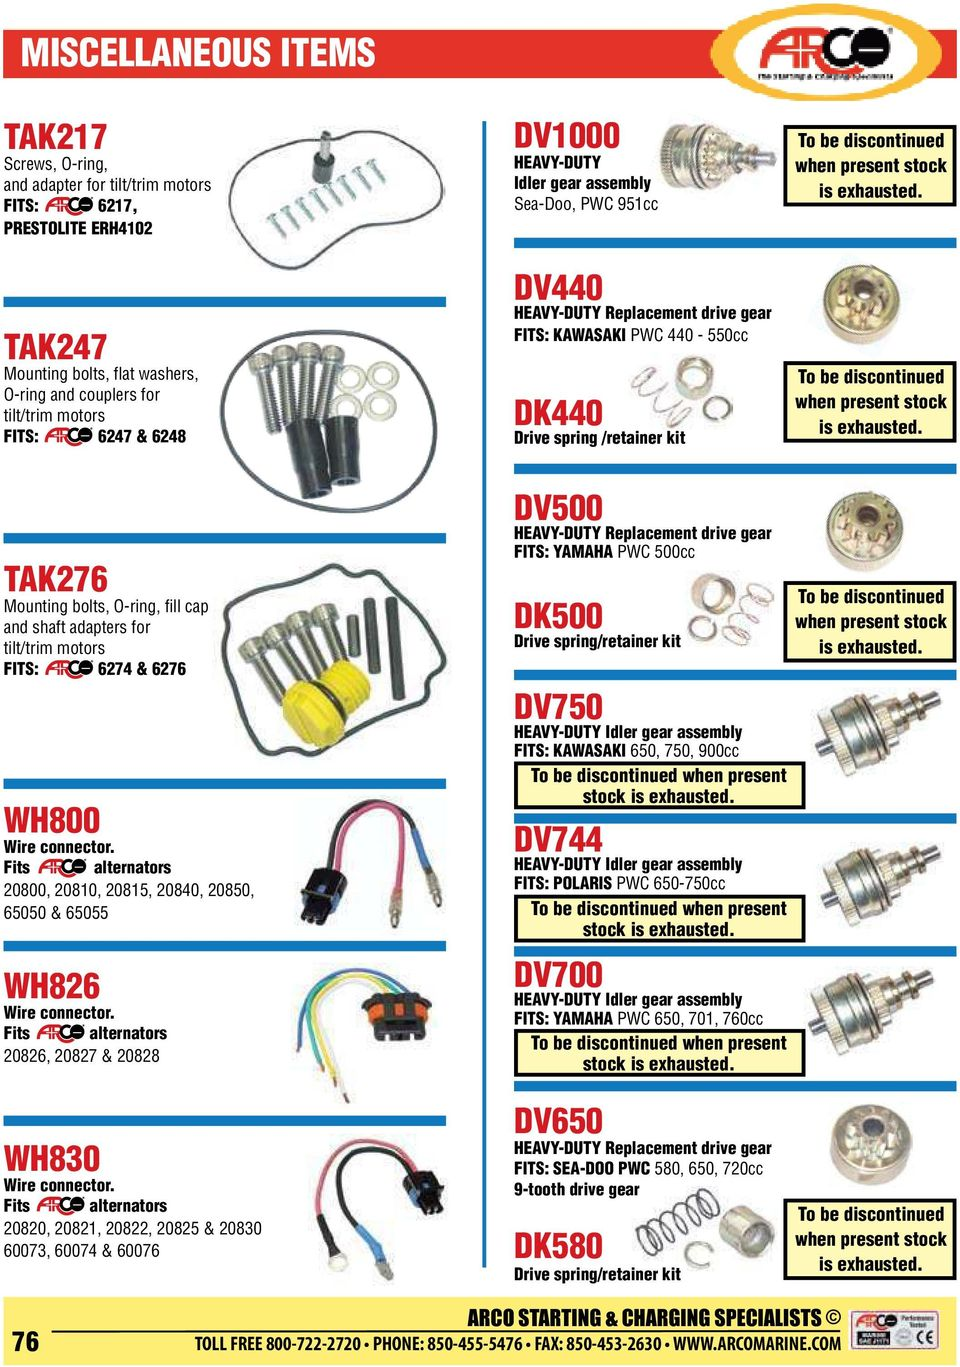 Replacement Solenoids Pdf Relay Wiring Diagram 90 380 Heavy Duty Tak247 Mounting Bolts Flat Washers O Ring And Couplers For Tilt Trim